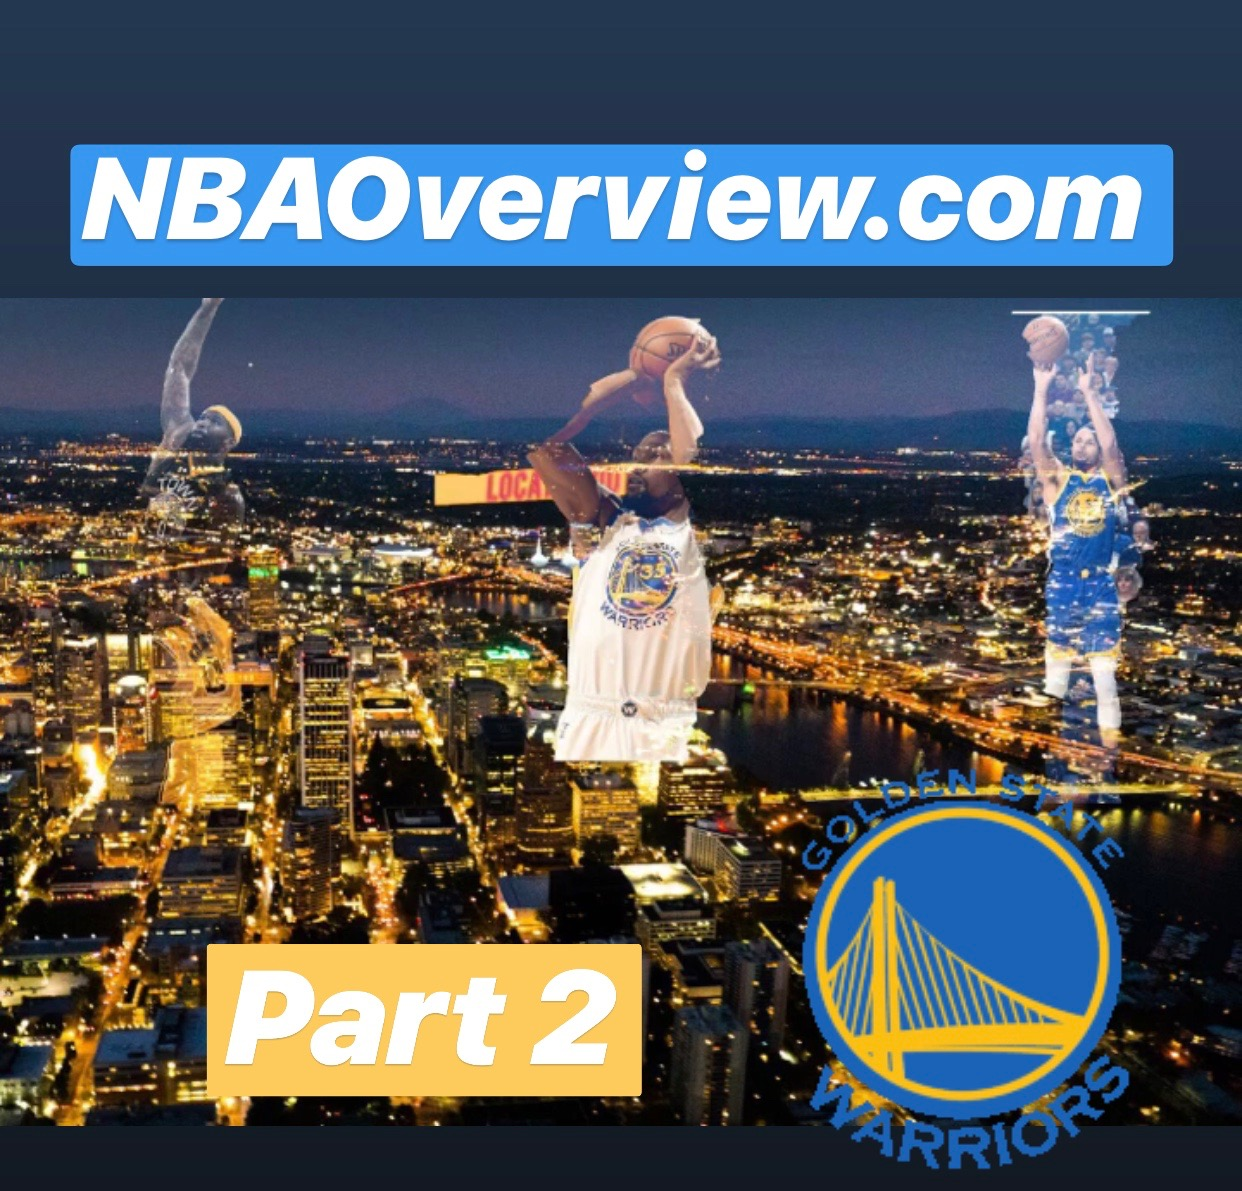 Are the Golden State Warriors unbeatable? Or will a team in the west beat them? An overview of the NBA!